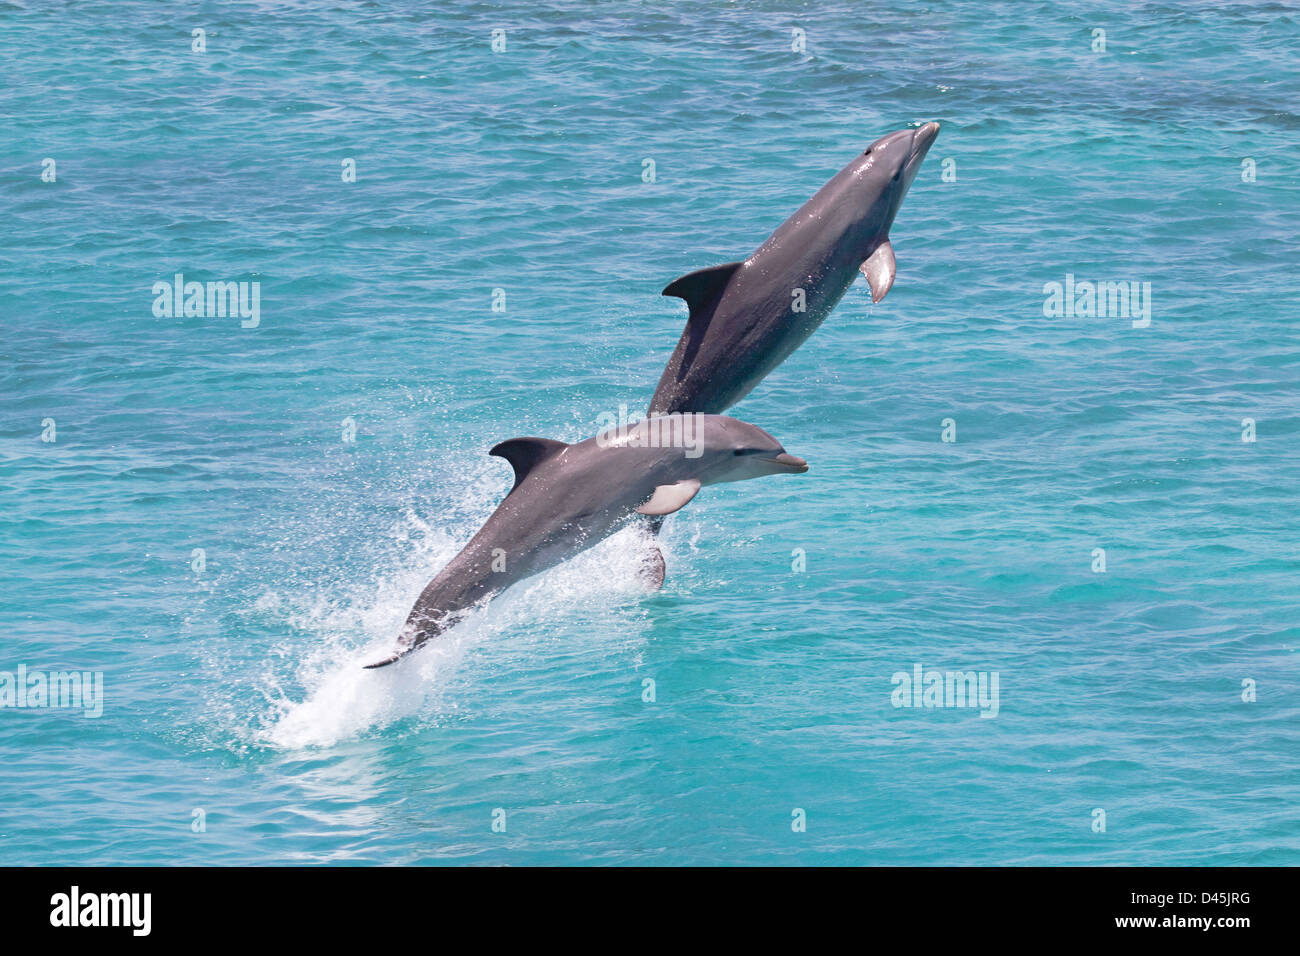 Atlantic Bottlenose Dolphin, Tursiops truncatus, leap from the ocean off Curacao, Netherlands Antilles, Caribbean. - Stock Image